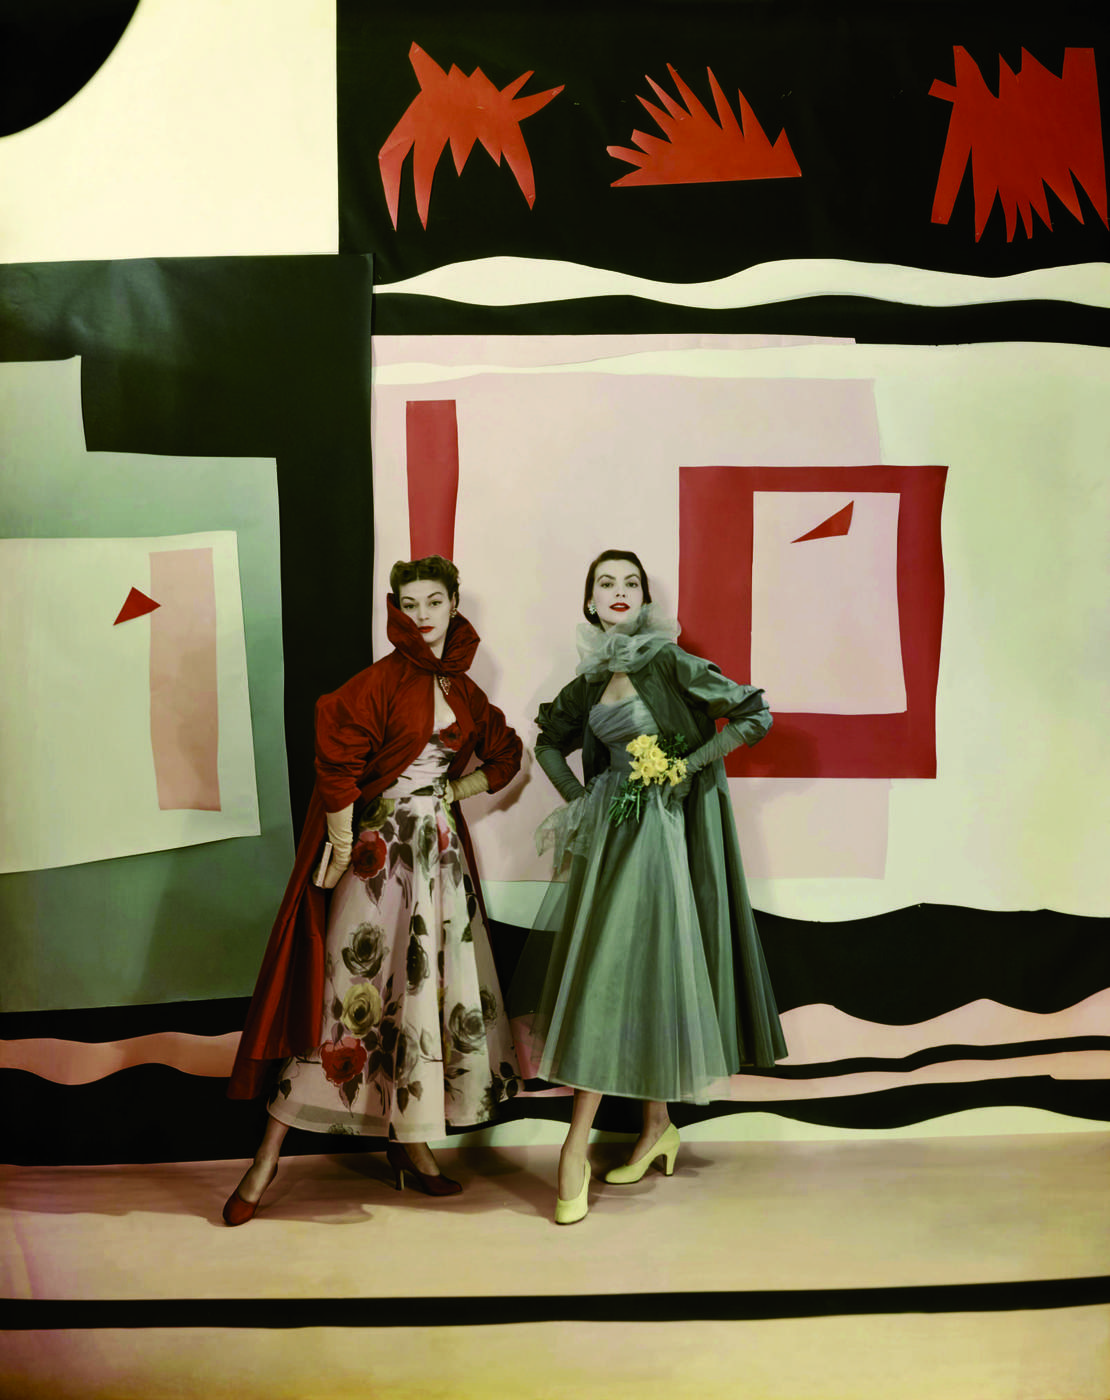 Jean Patchett and Carmen Dell'Orefice model Ceil Chapman eveningwear in front of a back-drop inspired by Matisse's 'Jazz', photographed for Vogue by Cecil Beaton,.jpg